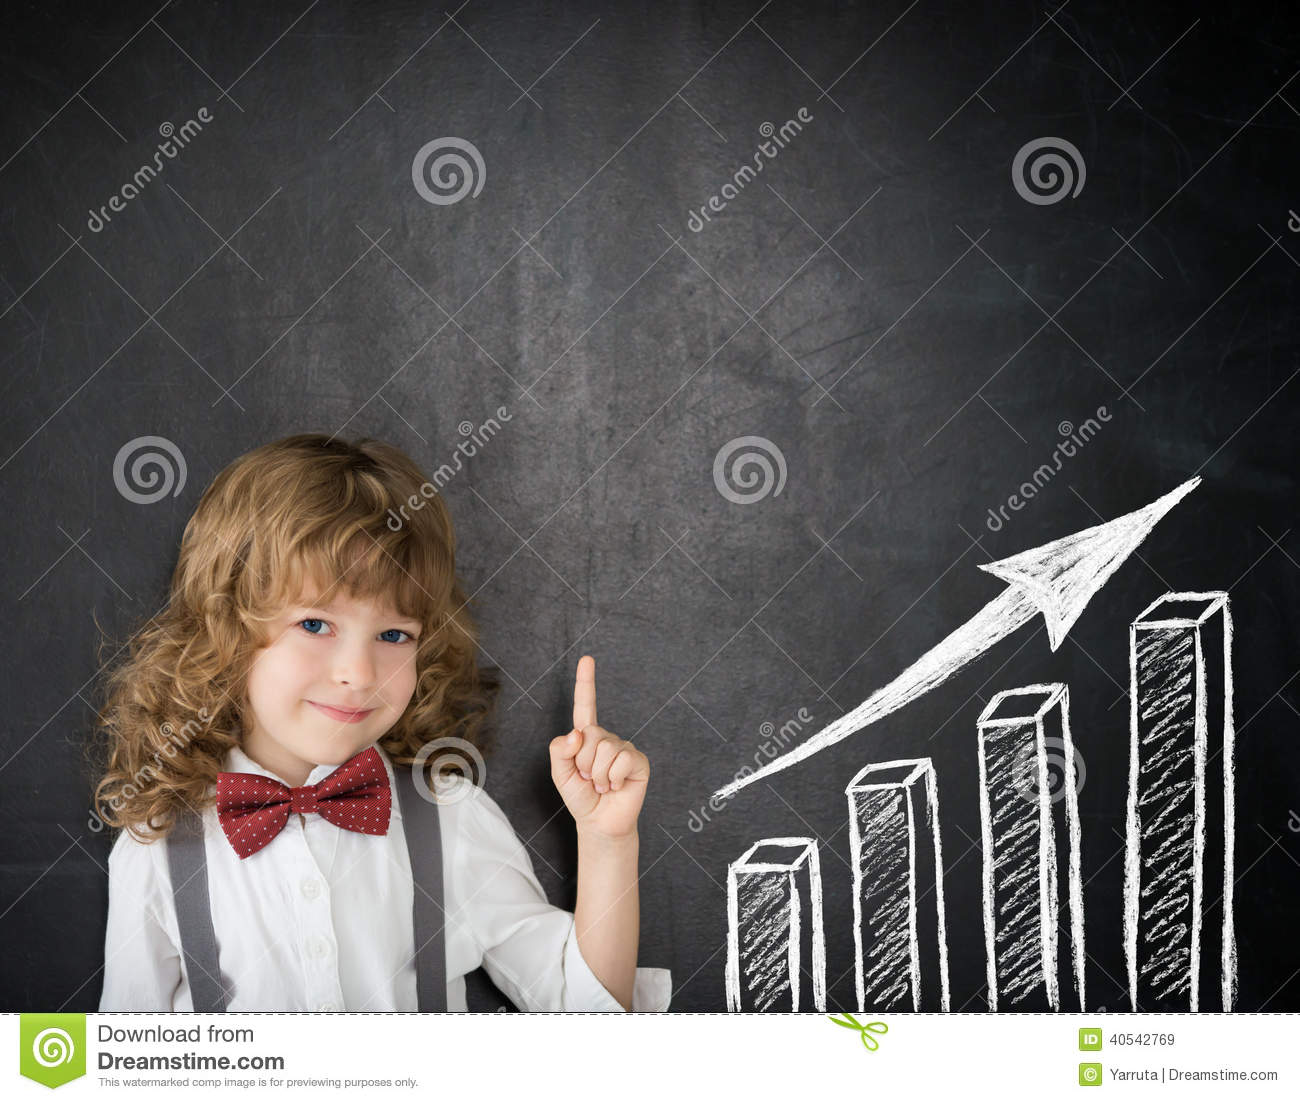 Download Growth bar graph stock image. Image of classroom, creativity - 40542769